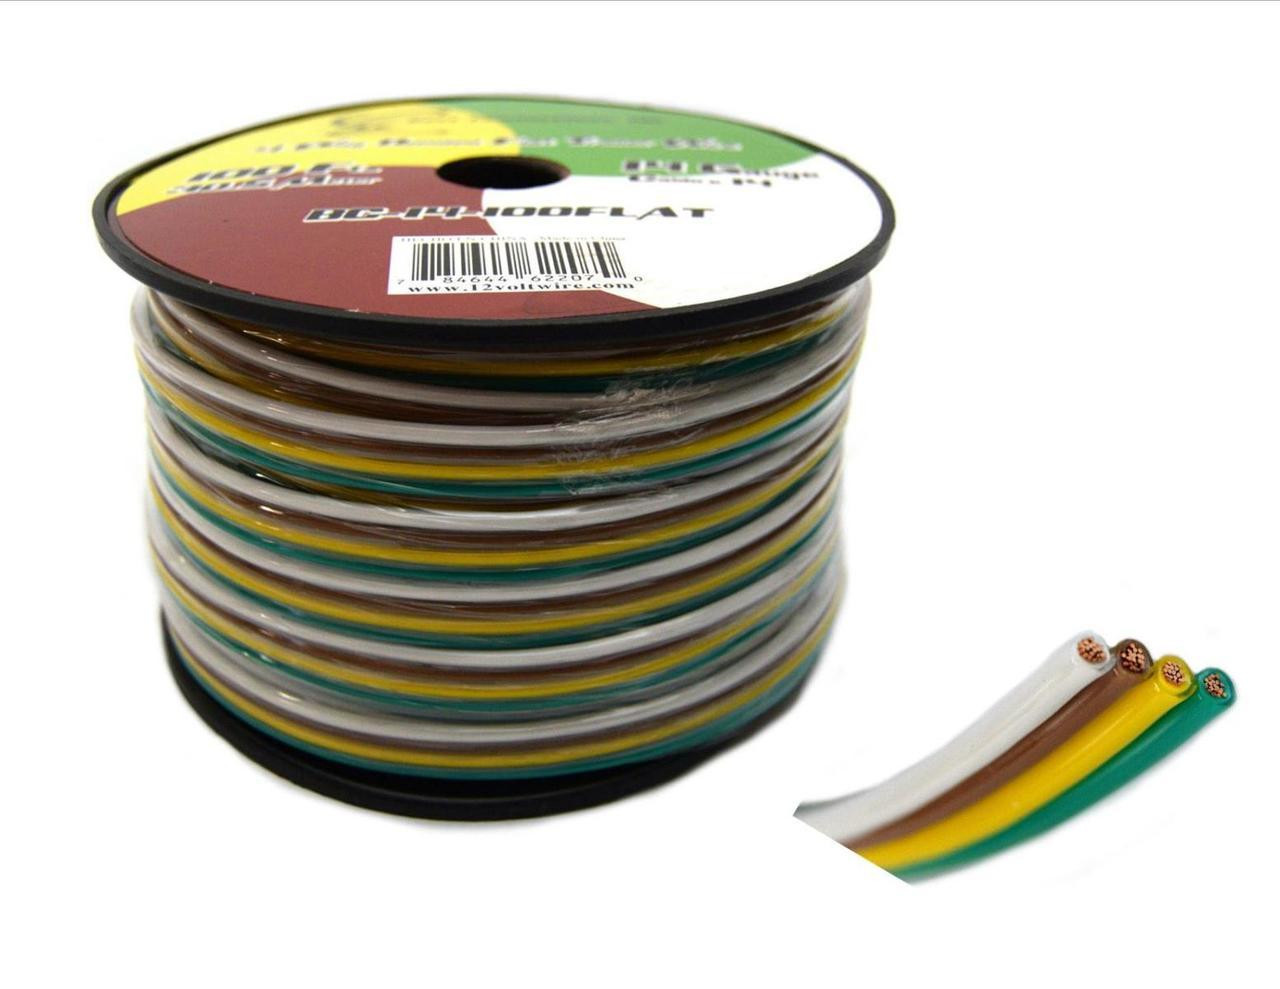 Flat Trailer Light Cable Wiring Harness 100 Feet 14 AWG 4 Wire CCA ...